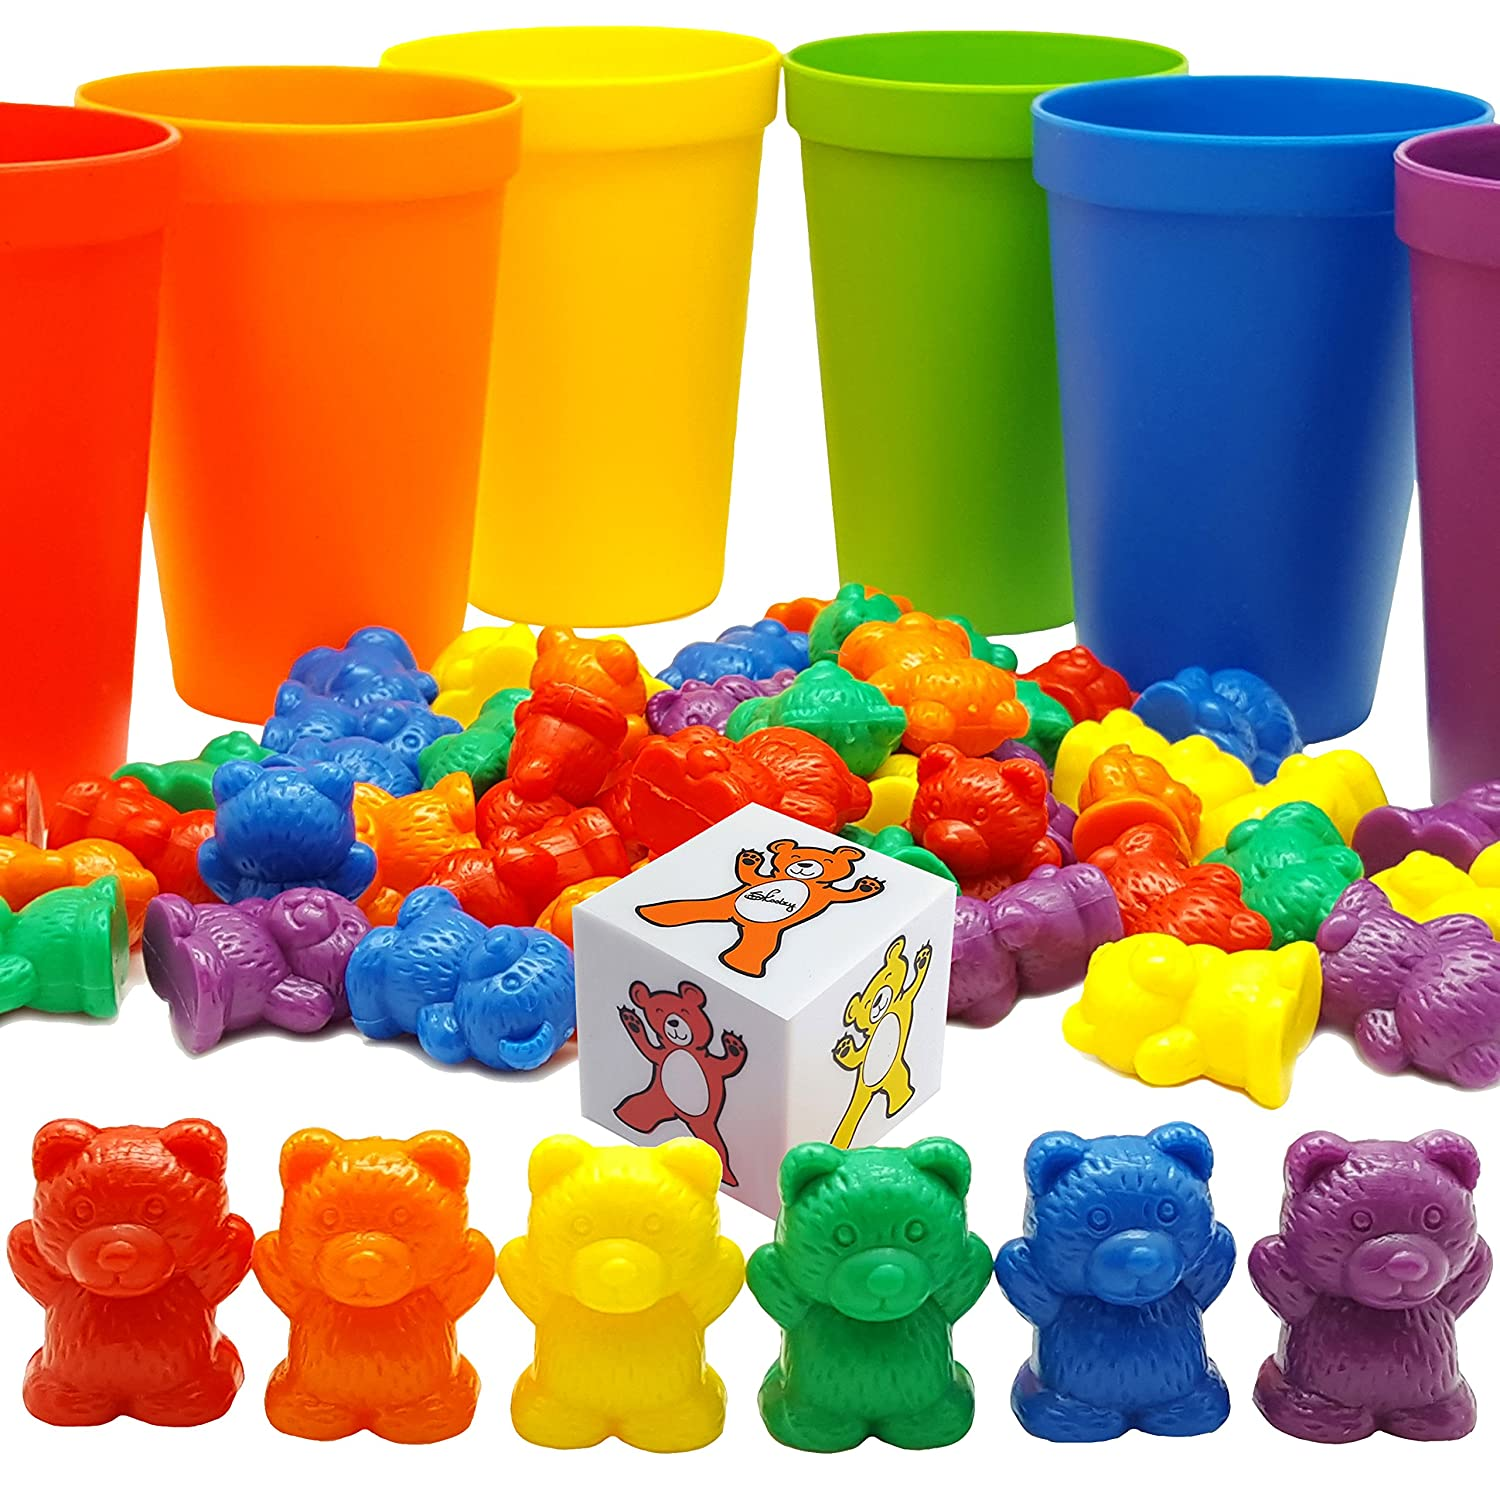 Amazon Rainbow Counting Bears with Sorting Cups and Dice